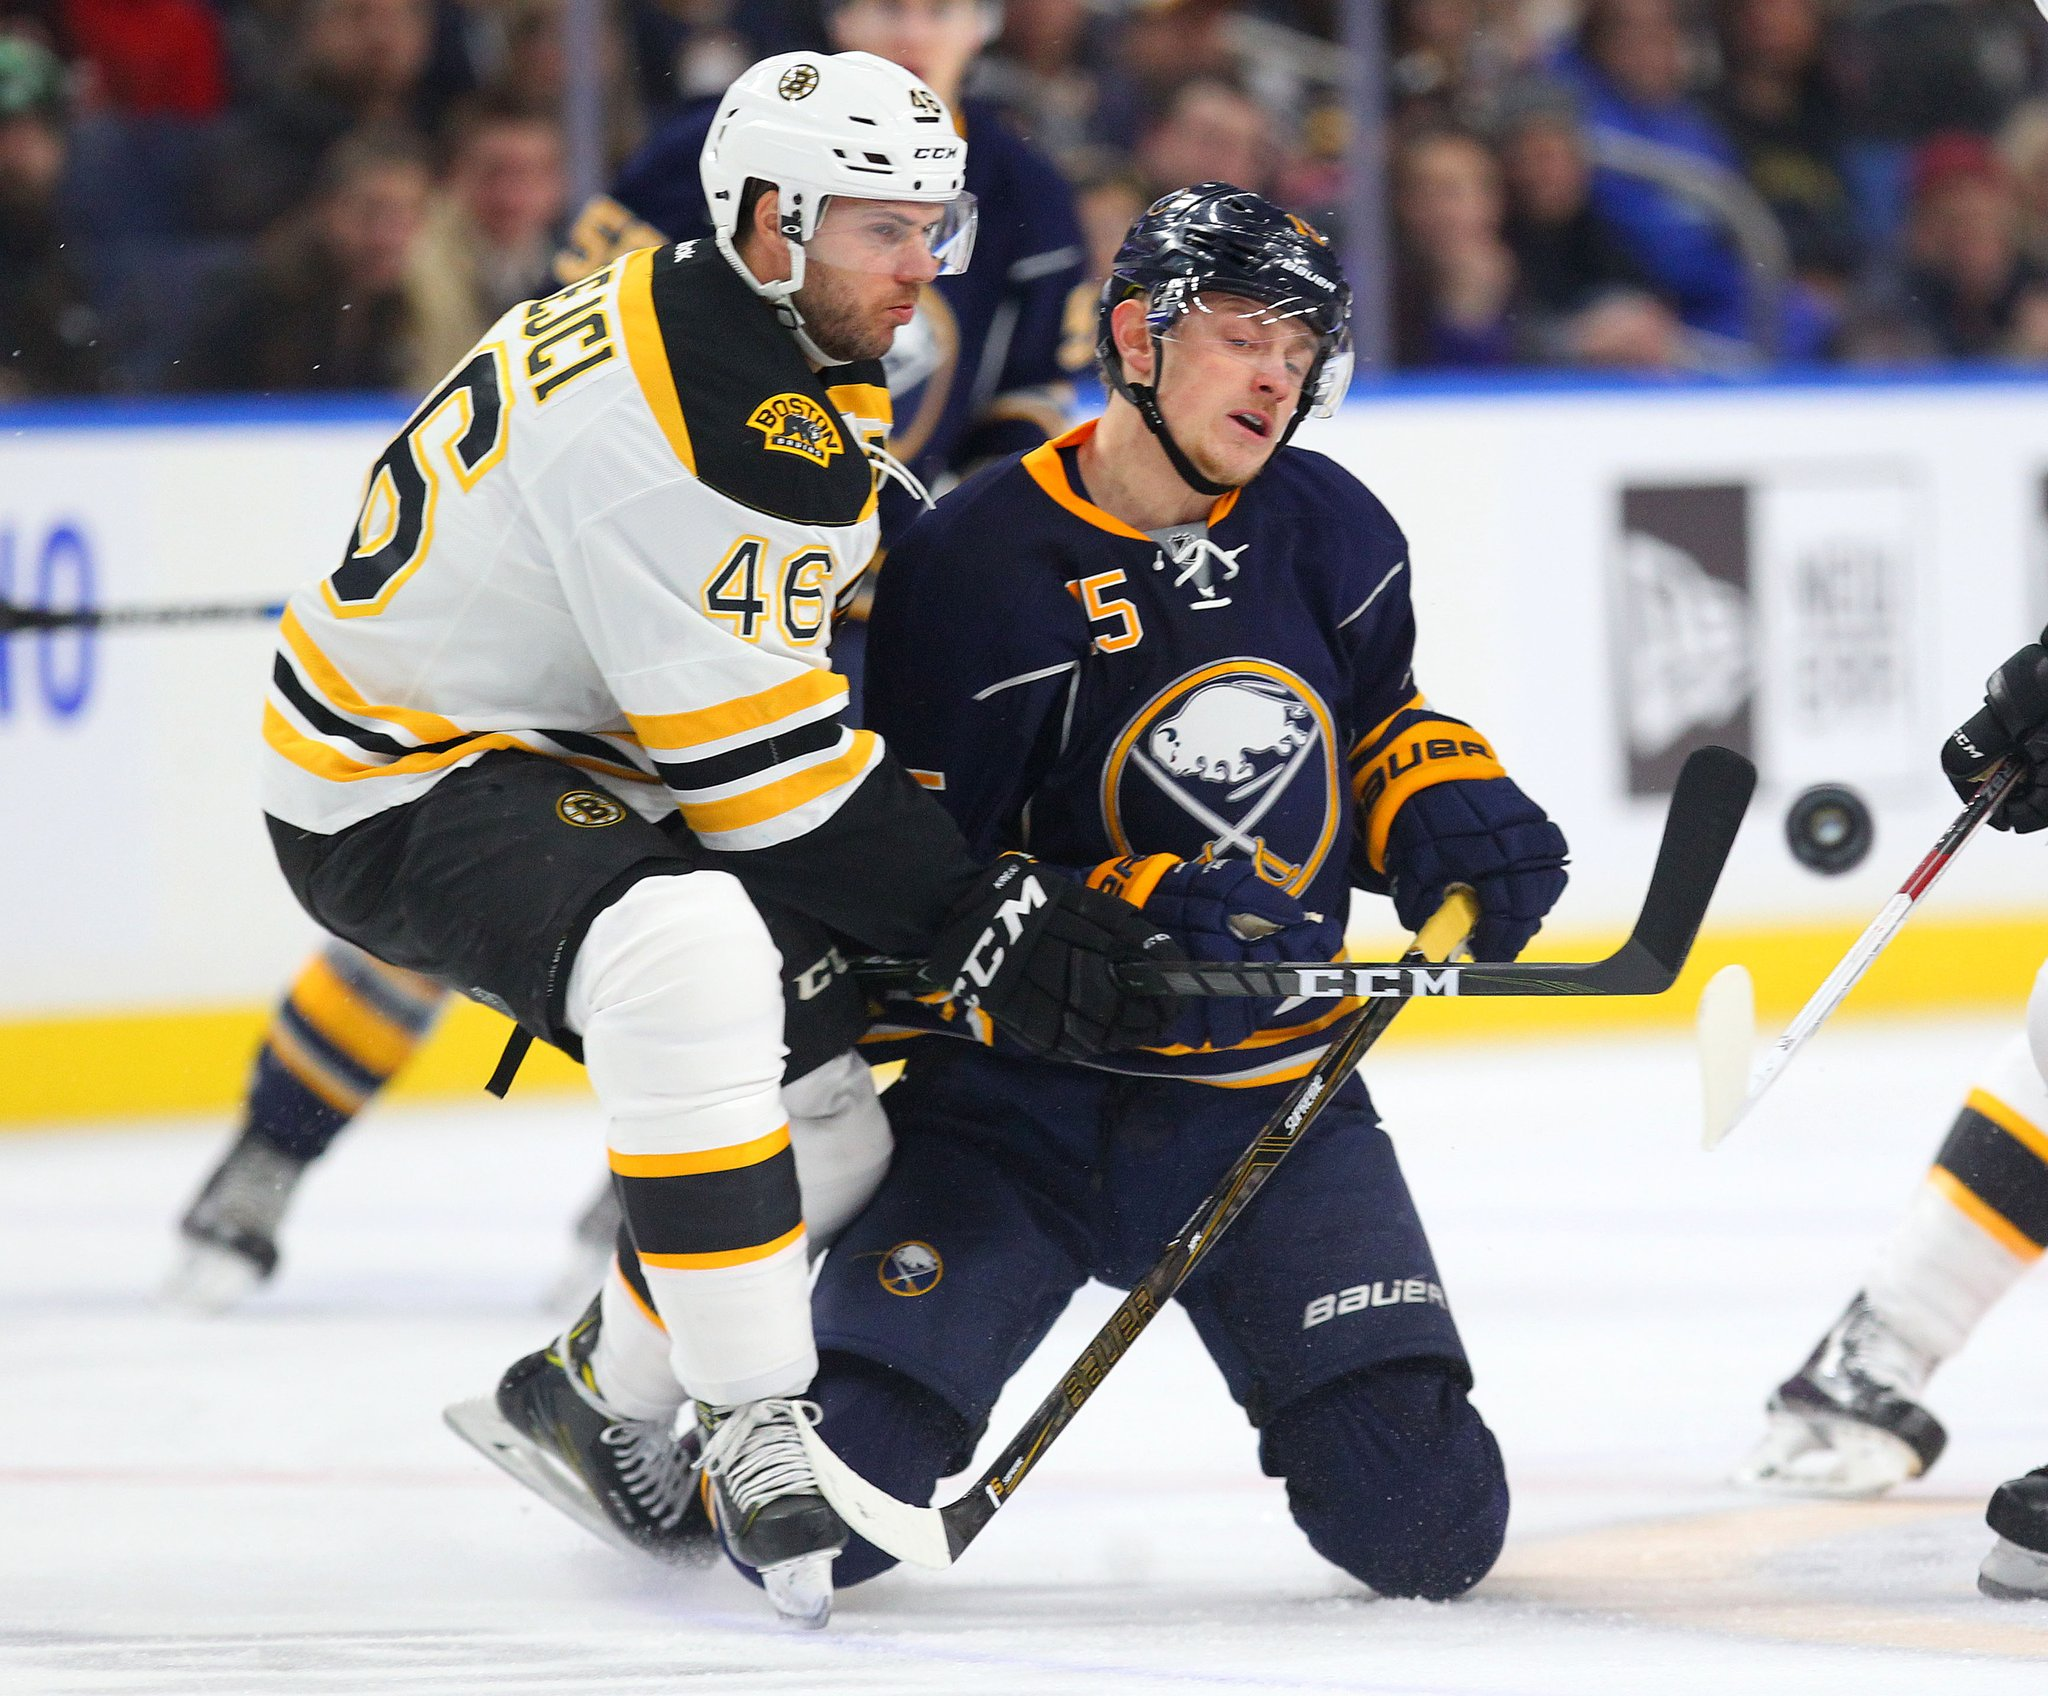 Boston's David Krejci and the Sabres' Jack Eichel jockey for the puck Saturday. (Photo by Mark Mulville/Buffalo News)